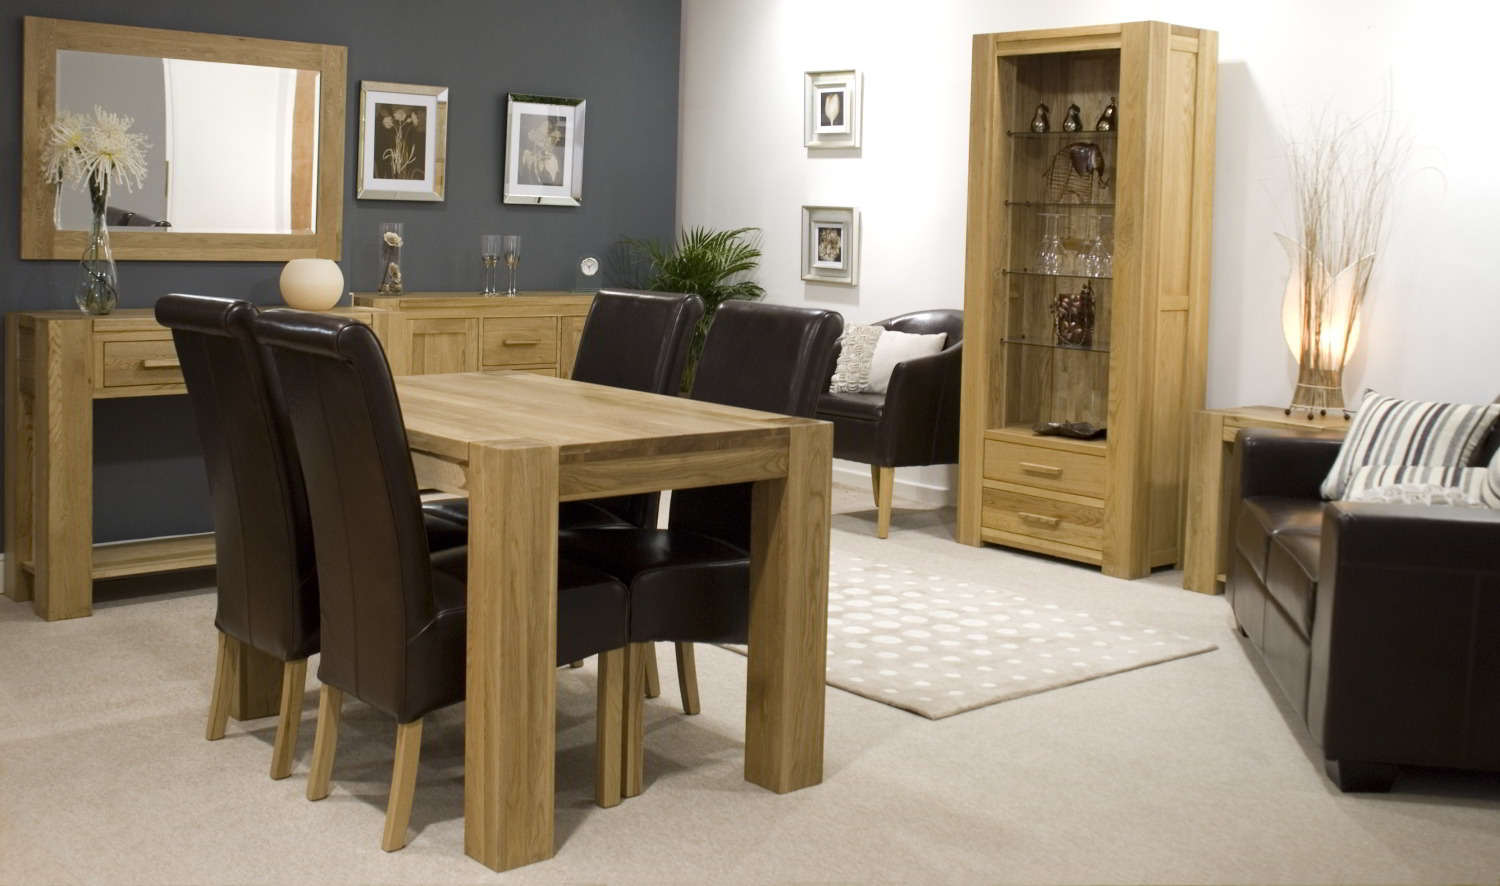 Pemberton solid oak furniture small living room office for Living room furniture uk